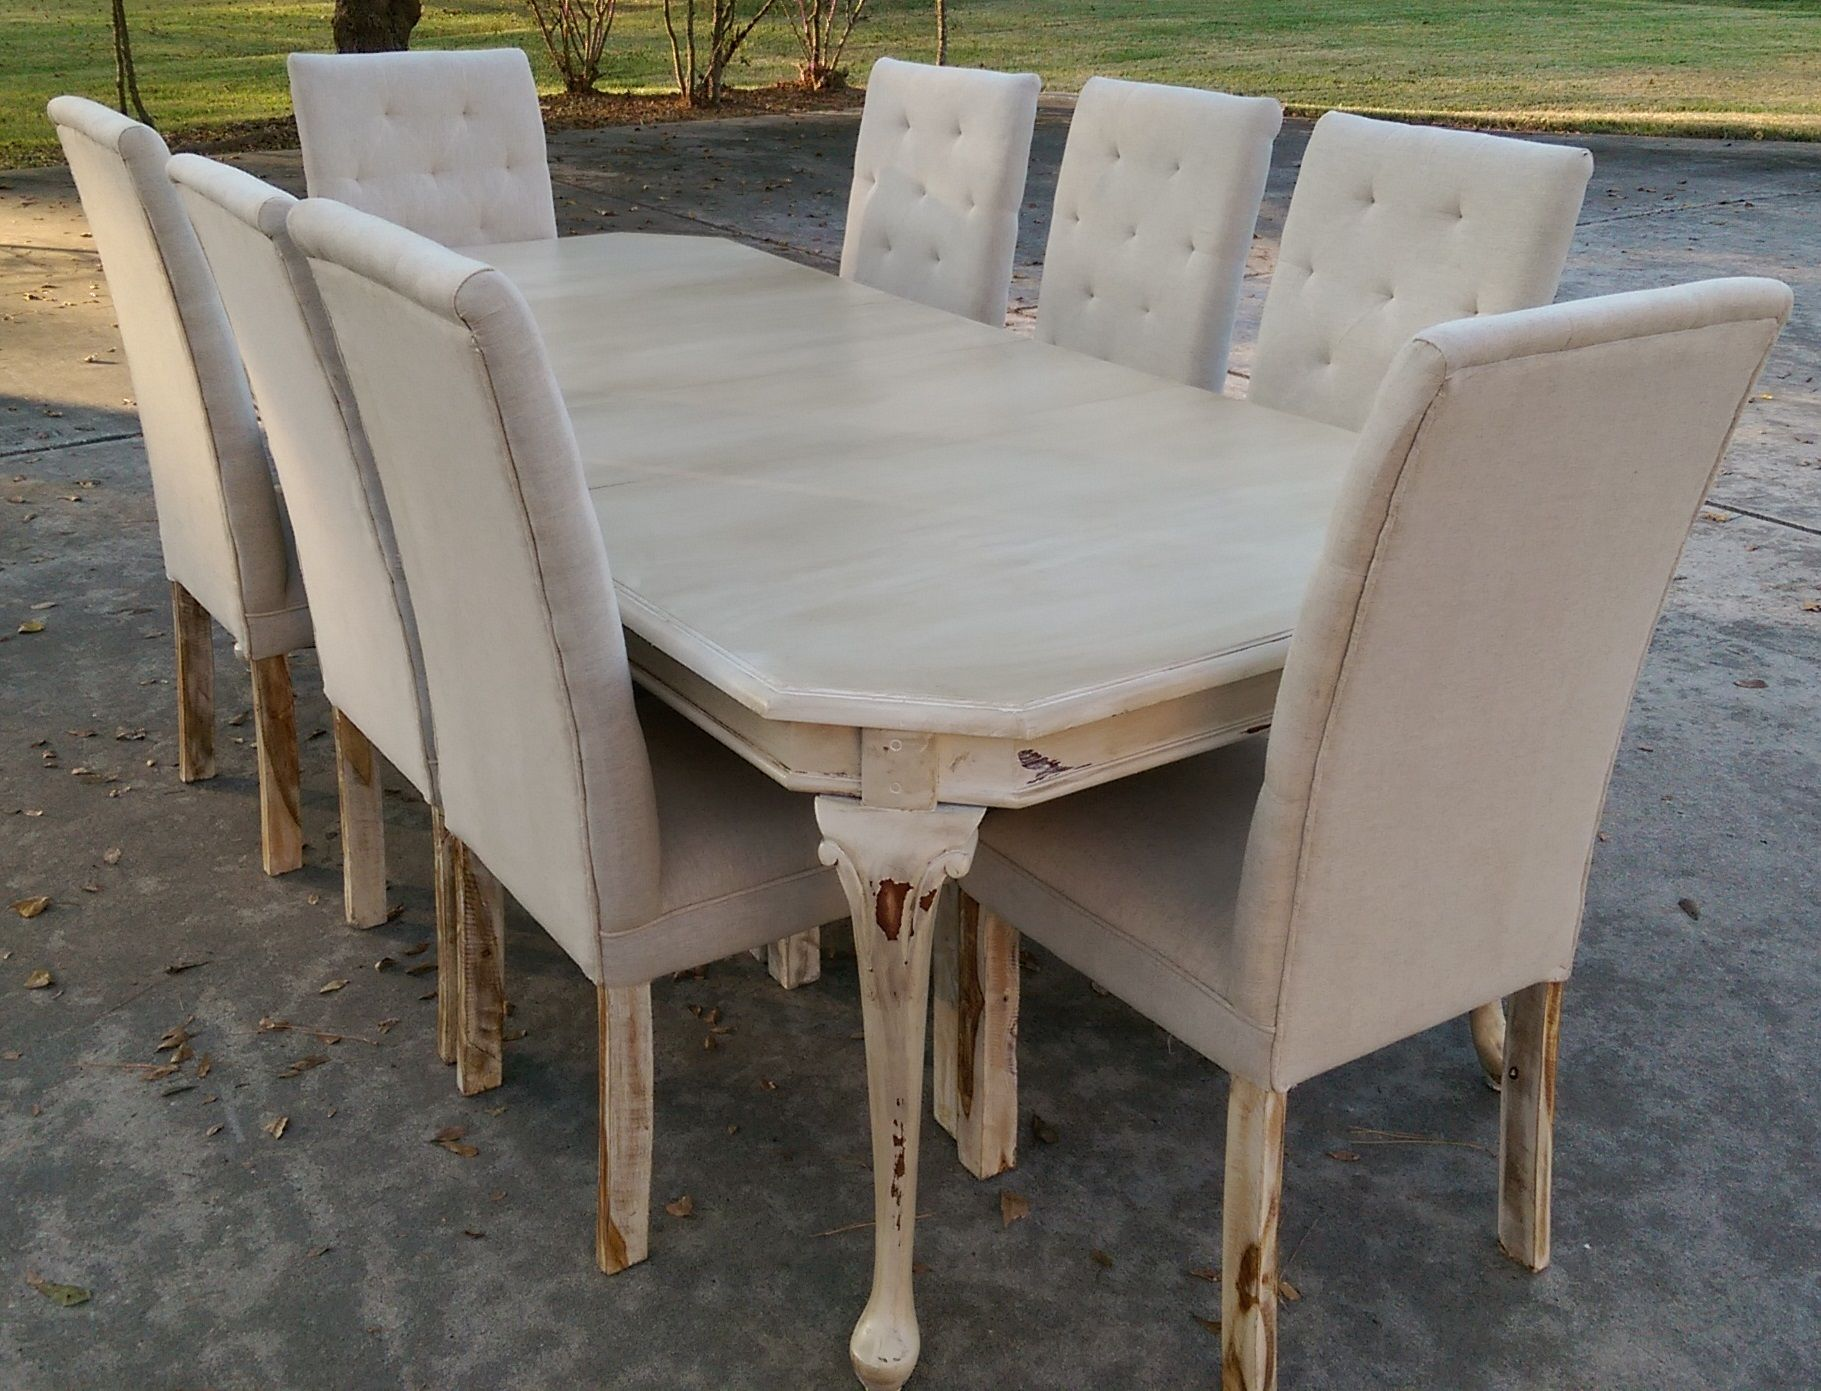 Now This Table Screams Country Chic It Is So Versatile Too With The Two Leaves You Have A Four S French Country Furniture Shabby Chic Dining French Furniture